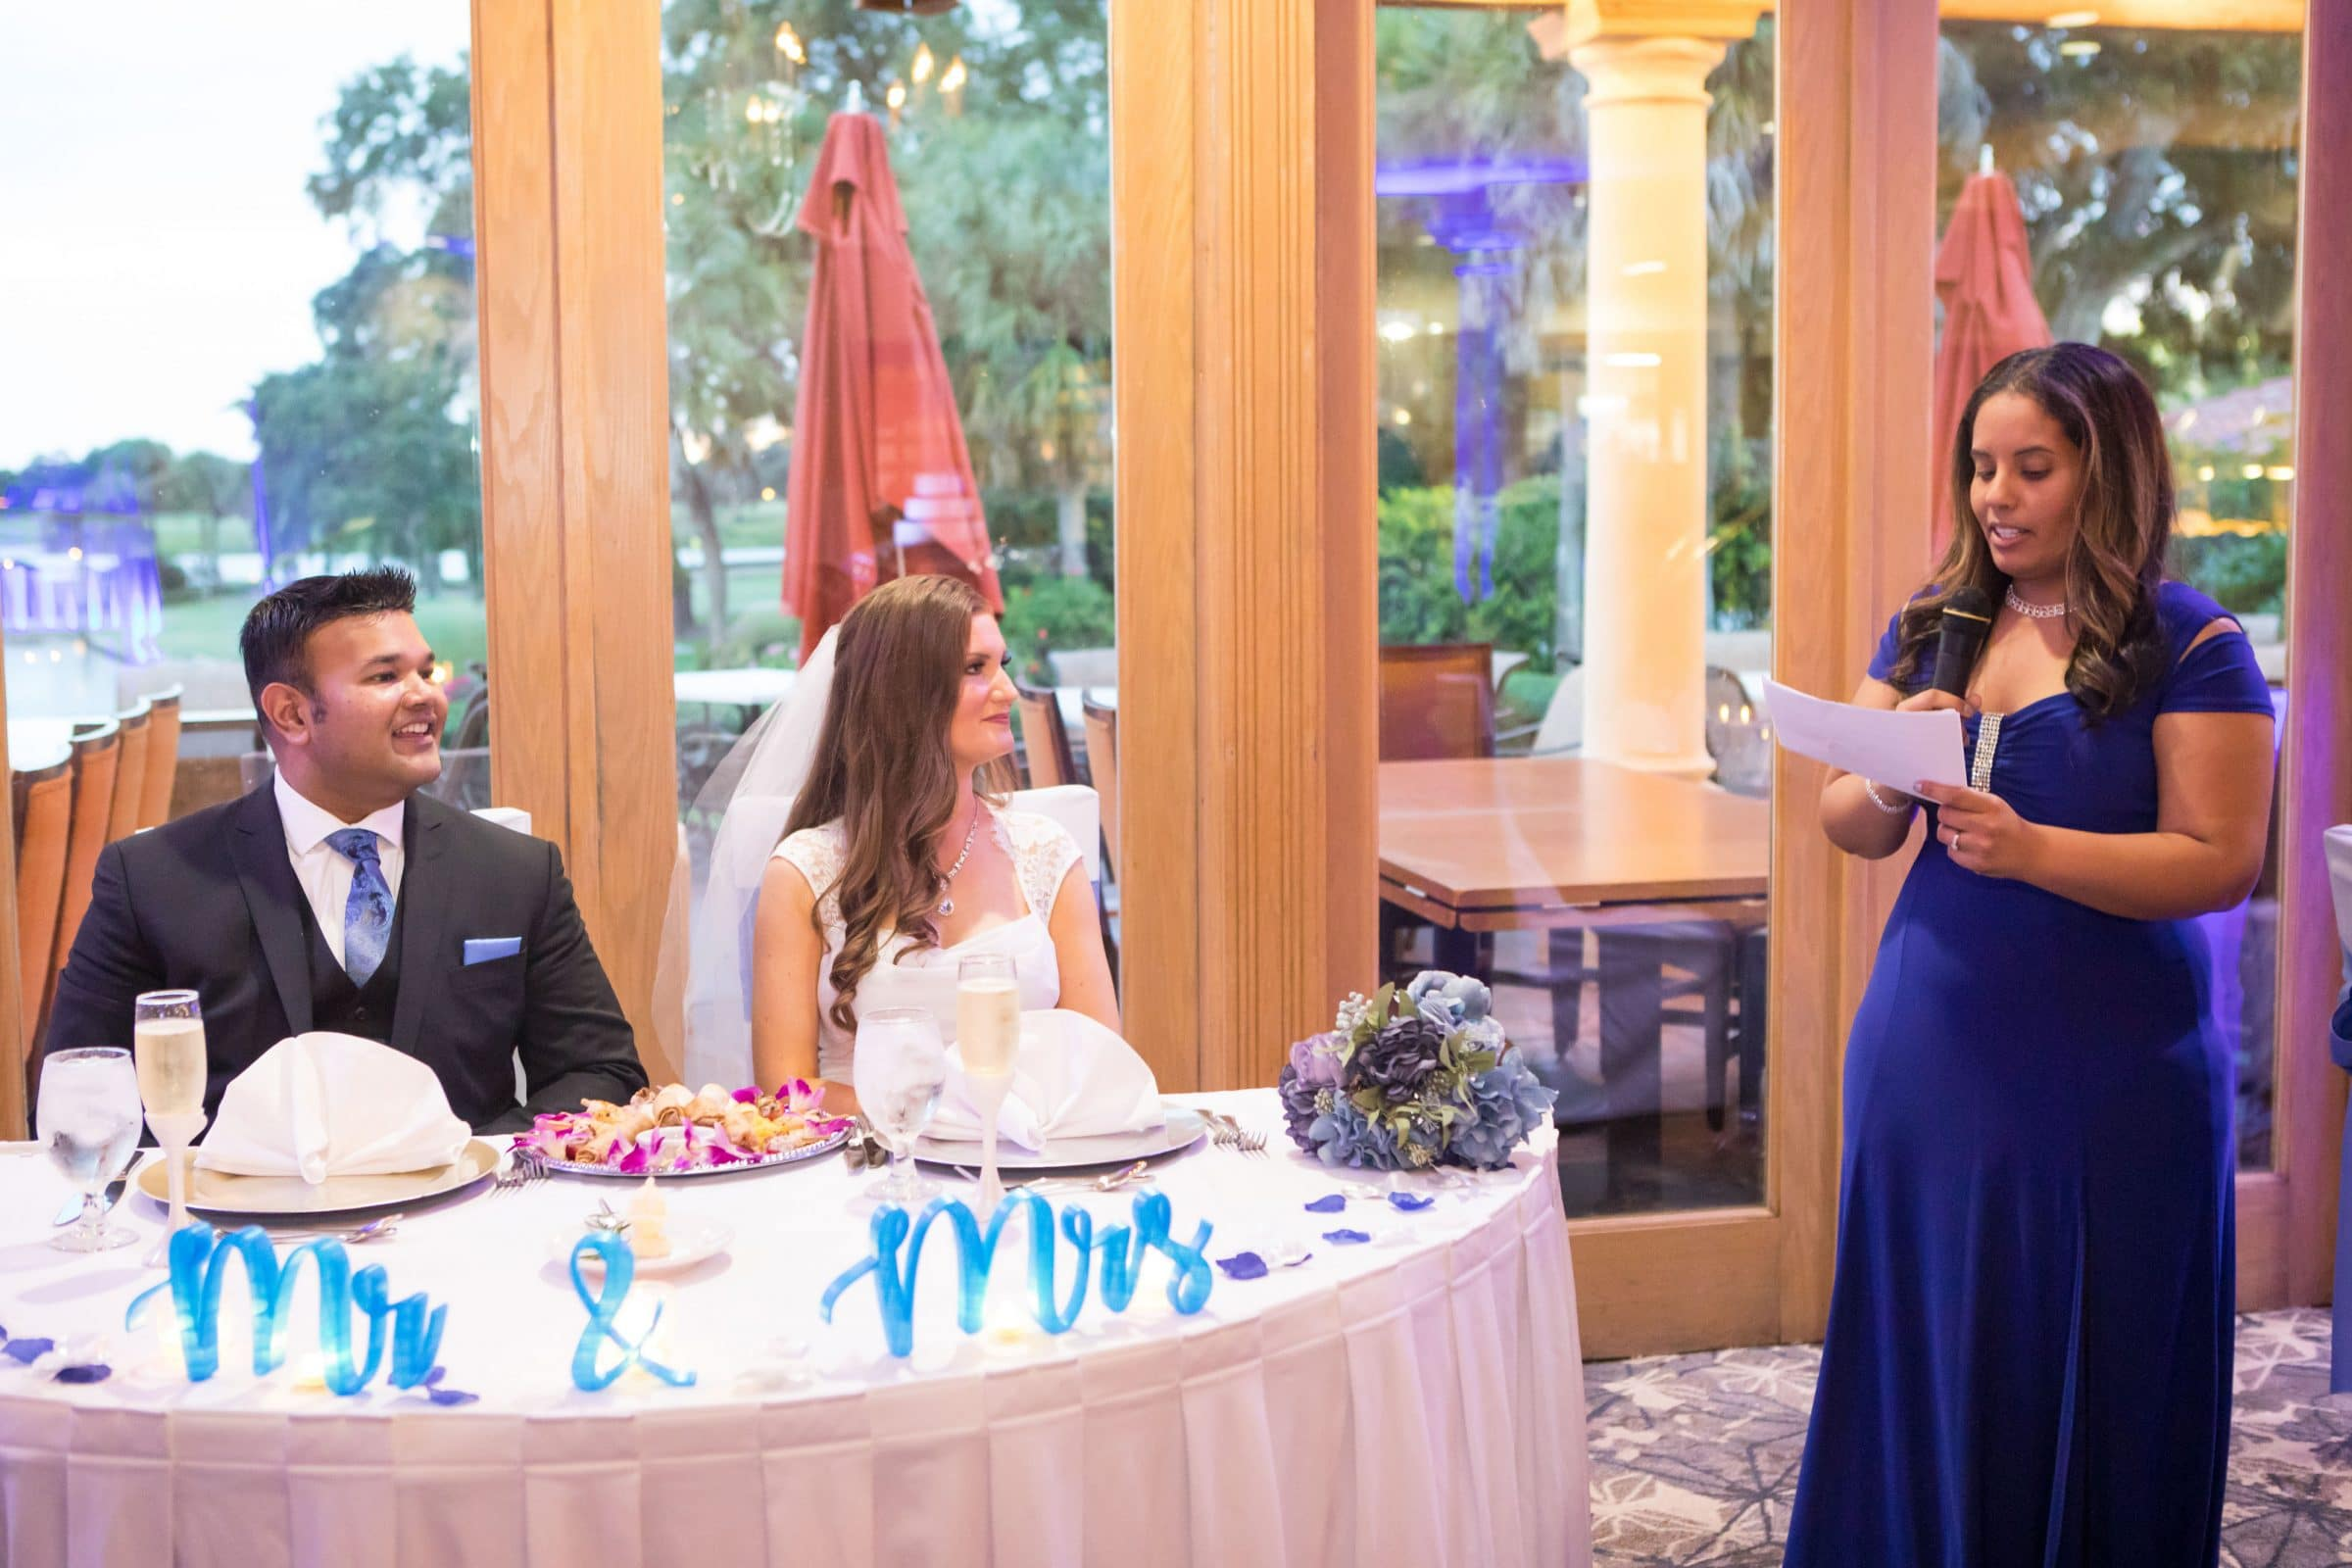 Wedding Toasts with Bride and Groom